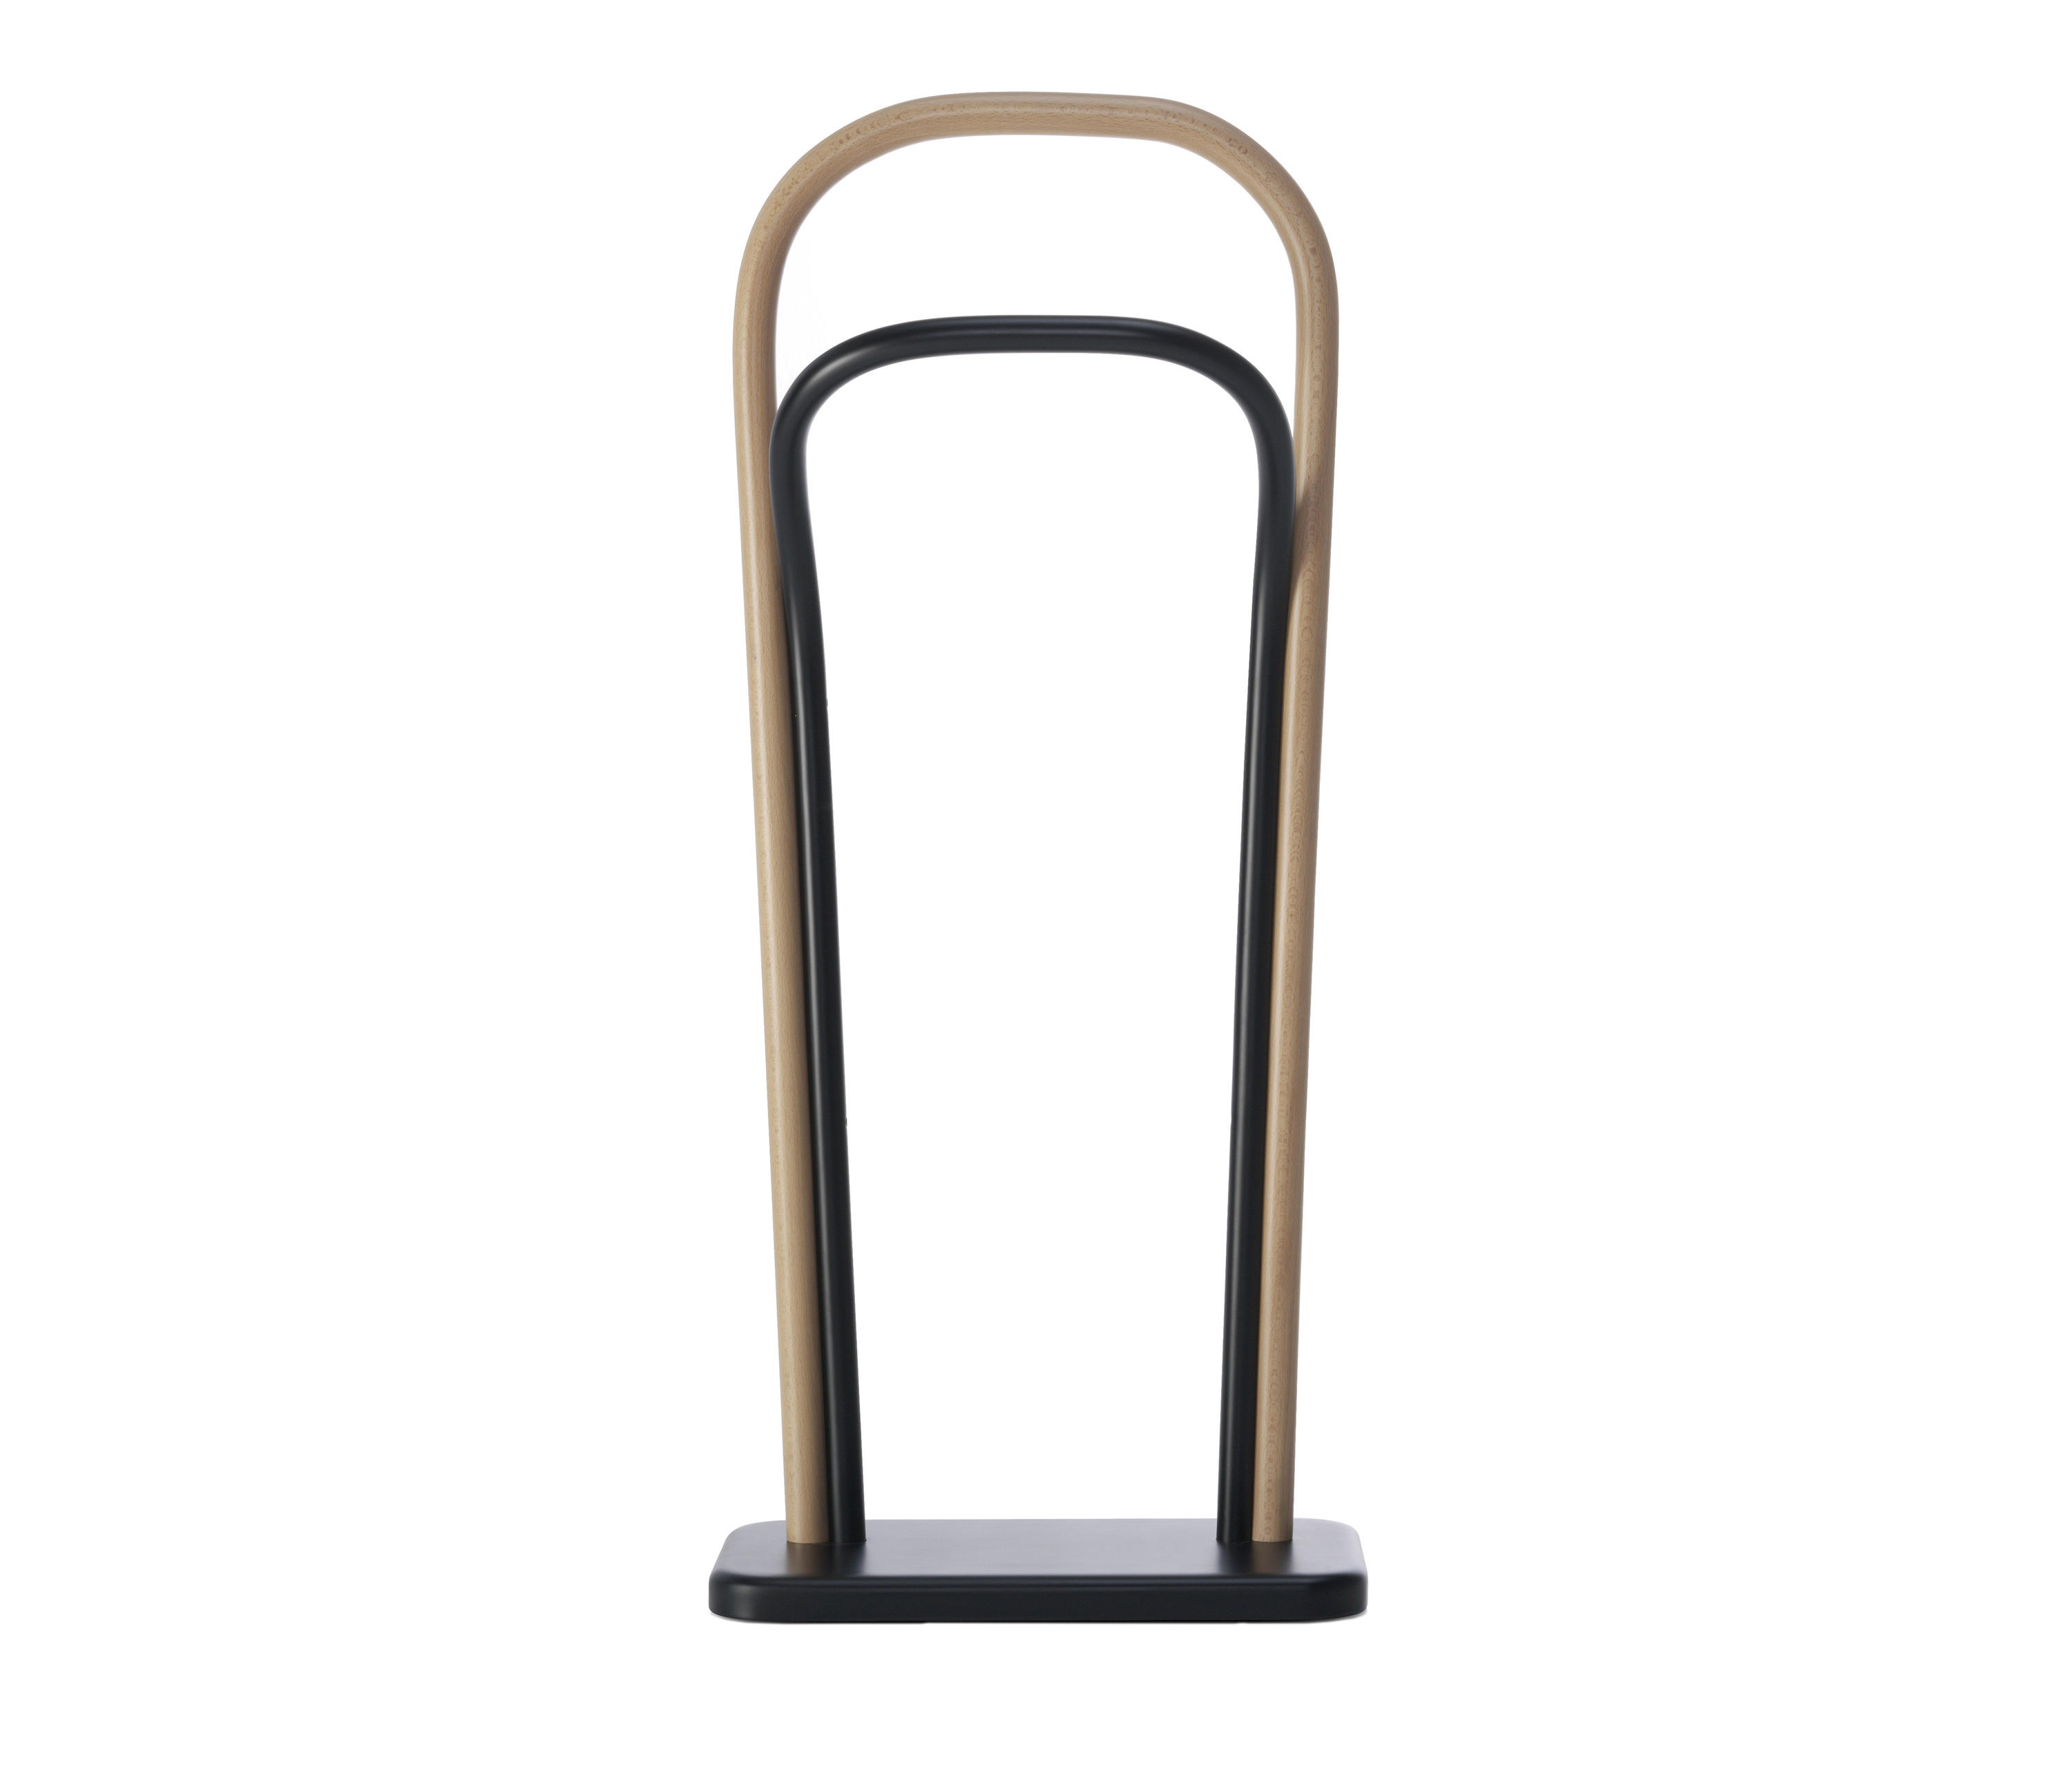 ARCH CLOTHES VALET - Clothes racks from WIENER GTV DESIGN